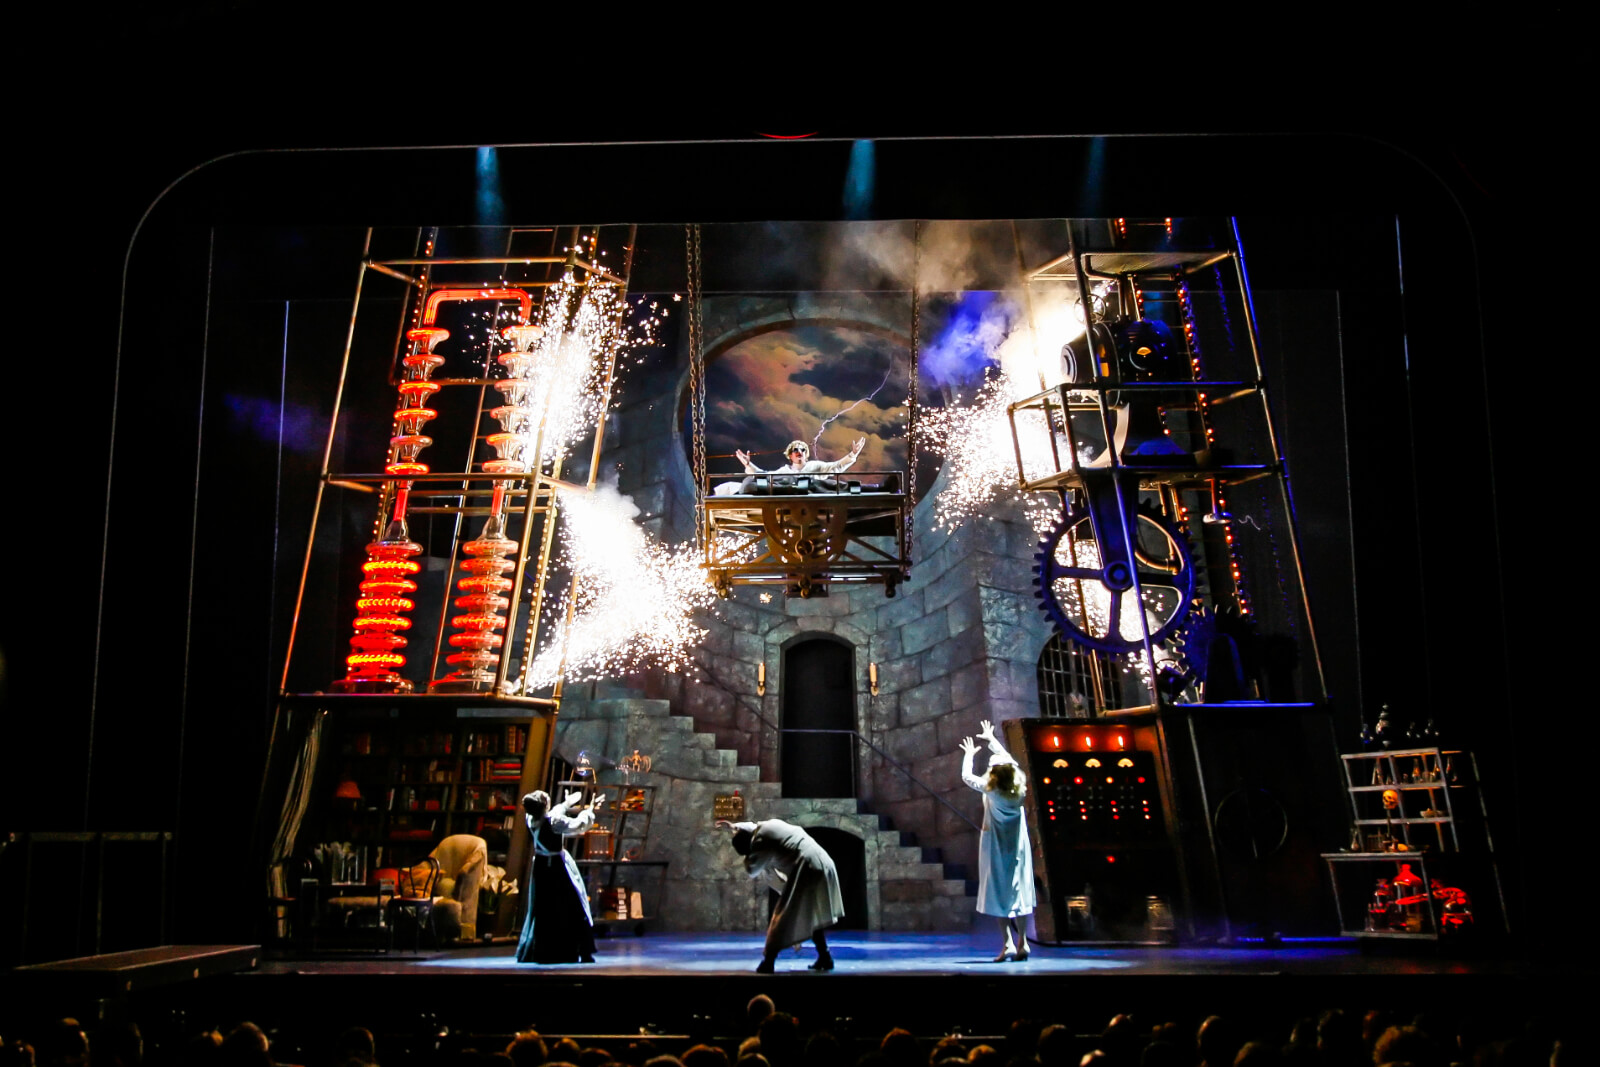 """Dr. Frankenstein (Roger Bart) sings """"Life, Life"""", in the lab. He is high in the air with the Monster laying on the lab table, below is Frau Blucher (Andrea Martin), Igor (Chris Fitzgerald ) and Inga (Sutton Foster). They are surrounded by electricity and sparks."""